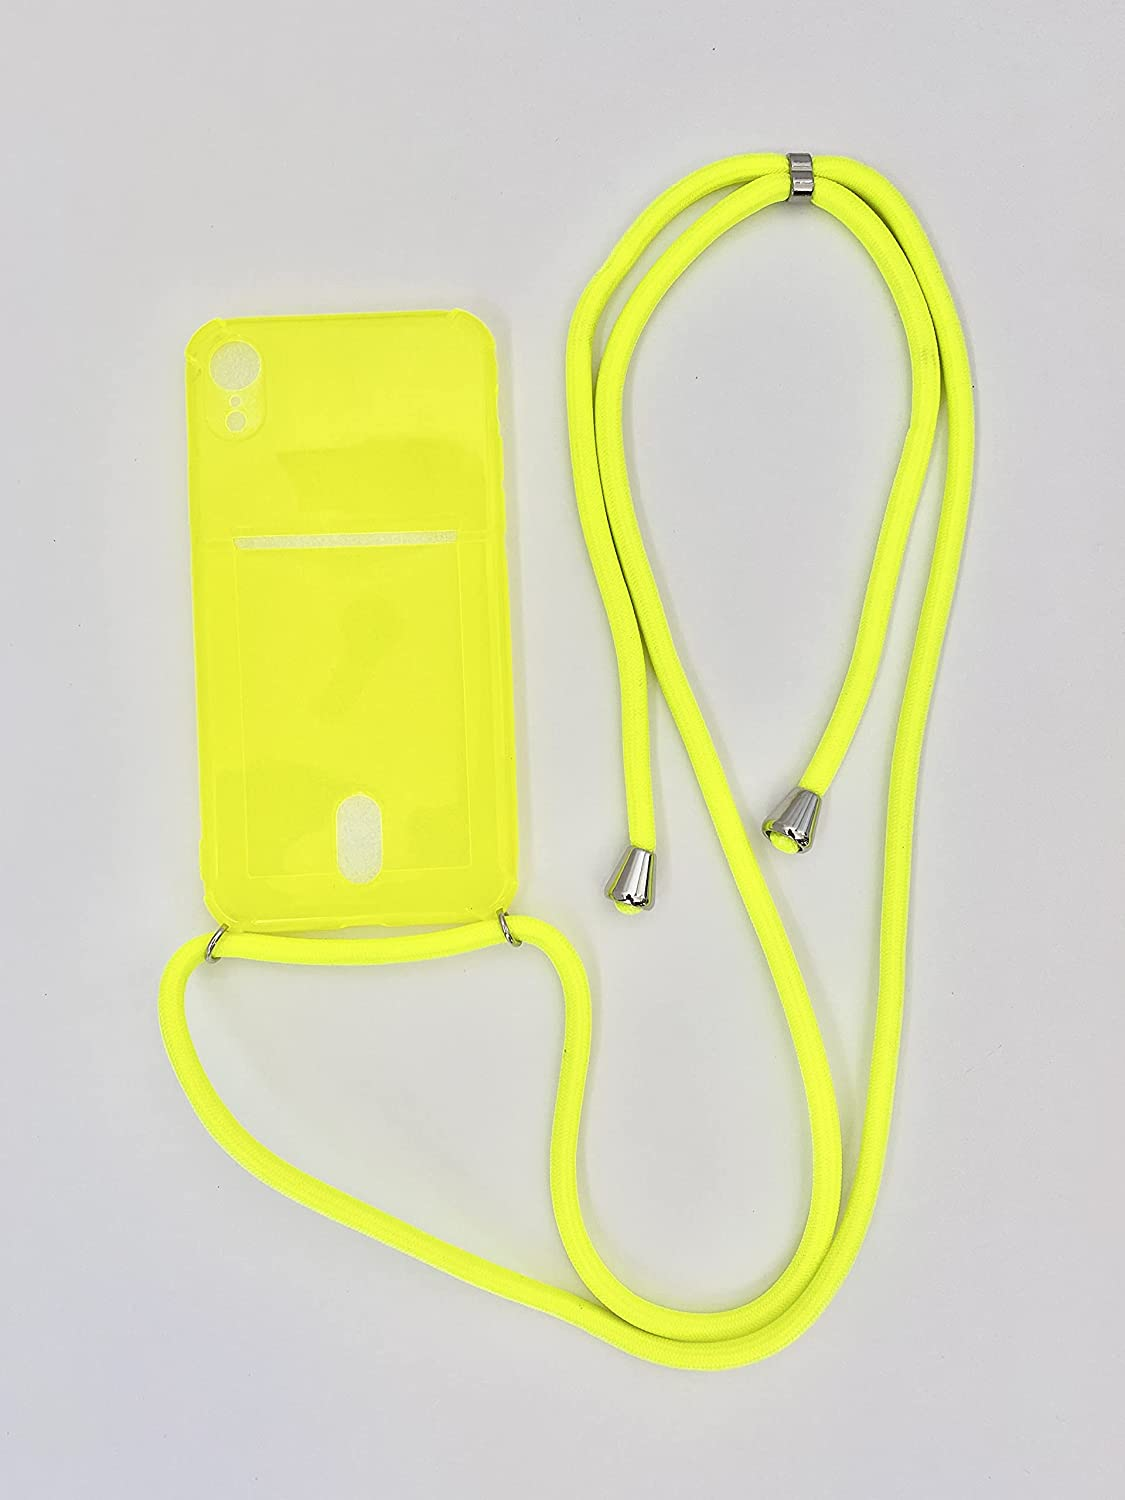 Crossbody Phone Case with Card Holder -TPU Protector Designed for iPhone, Holds 2 Cards - Hanging Smartphone with Shoulder/Neck Strap-Y2K - Yellow (iPhone 11 Pro, Electric Yellow)